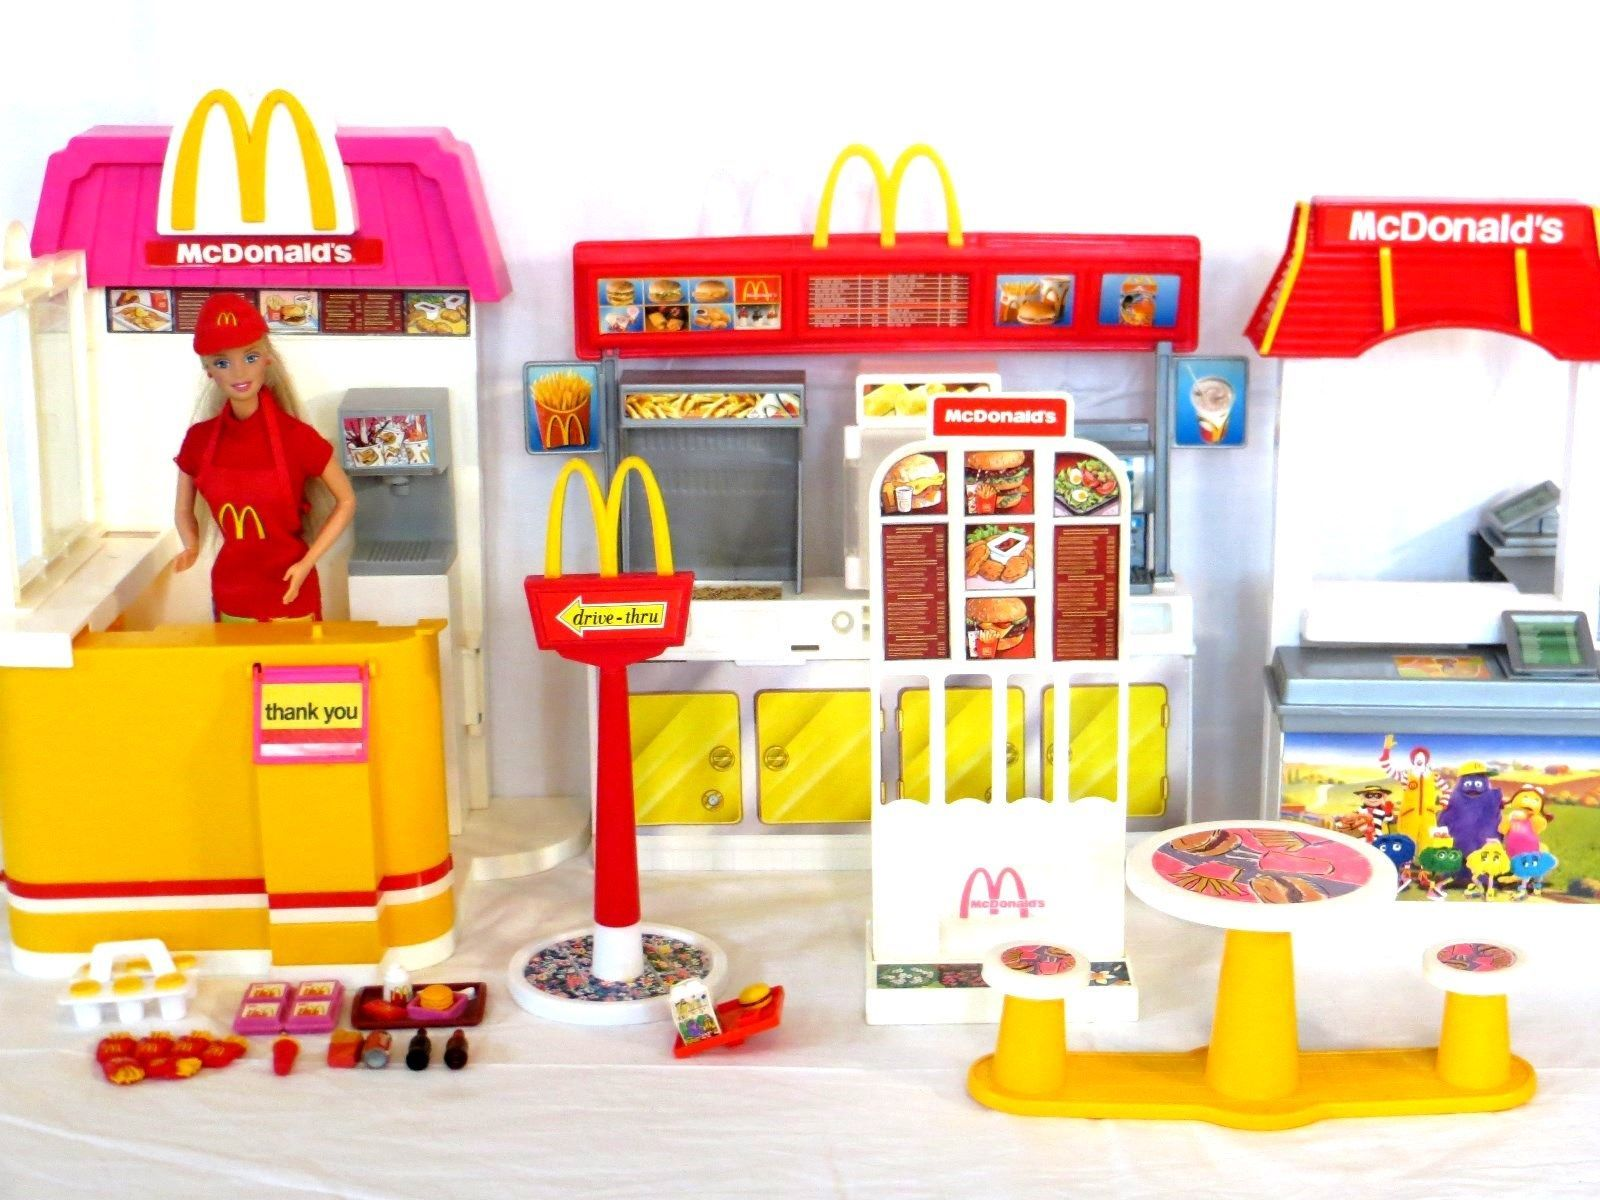 barbie mcdonald 39 s play sets from 1993 and 2003 with barbie in mcdonald 39 s uniform i bought this. Black Bedroom Furniture Sets. Home Design Ideas